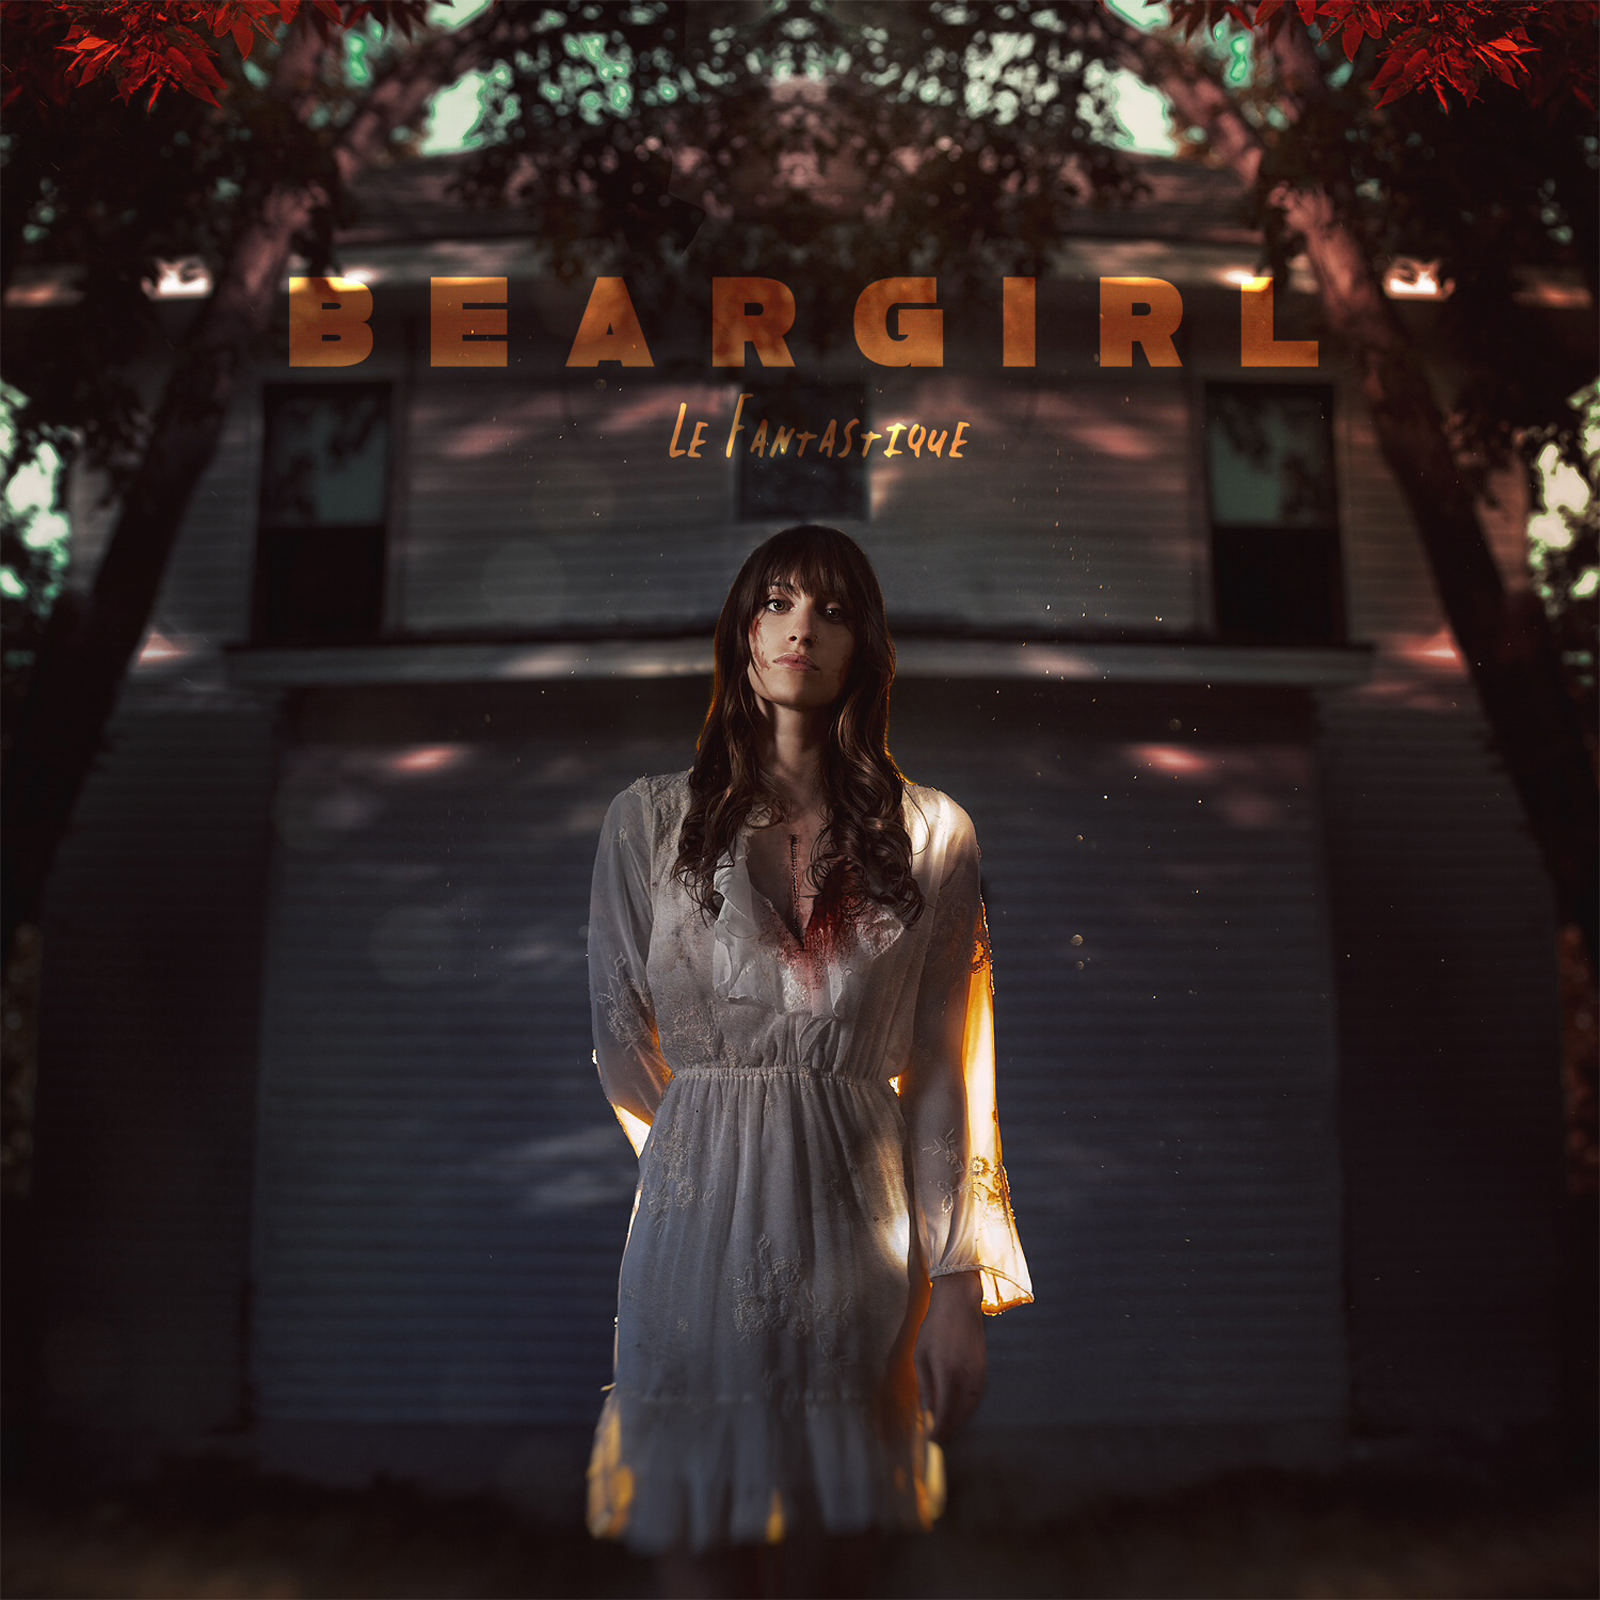 Bear Girl - 'Le Fantastique'